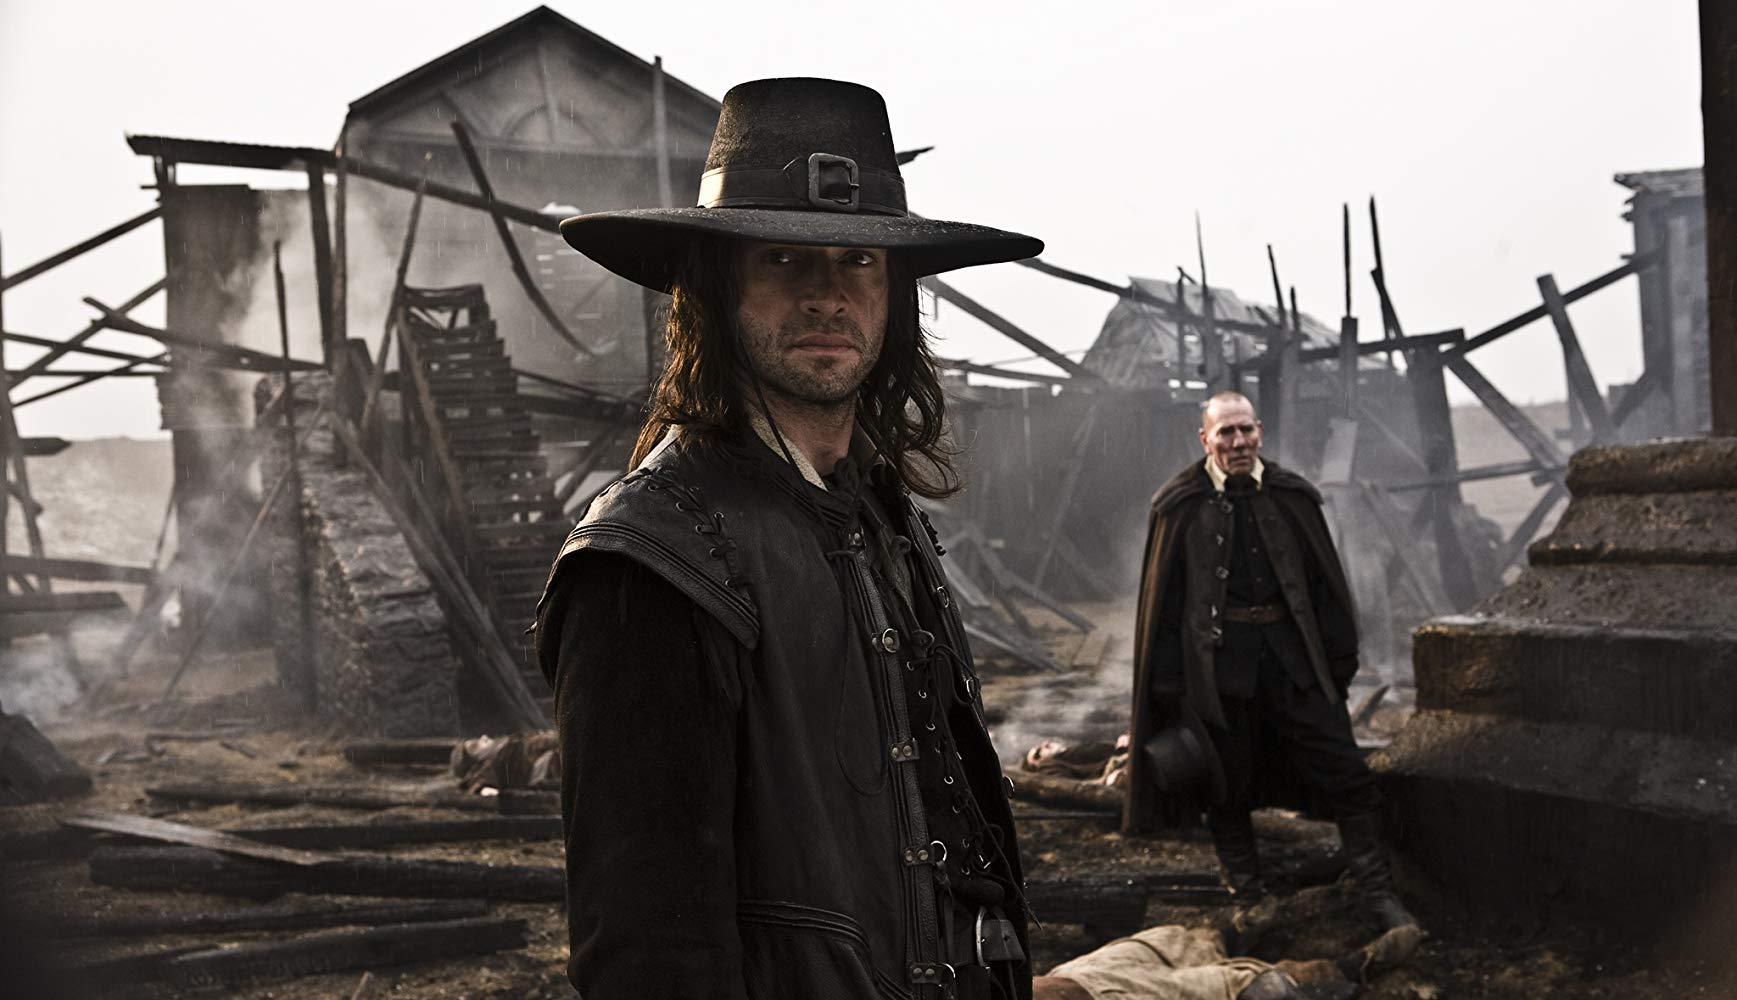 James Purefoy as Robert E. Howard's Puritan warrior Solomon Kane with Pete Postlethwaite in the background in Solomon Kane (2009)